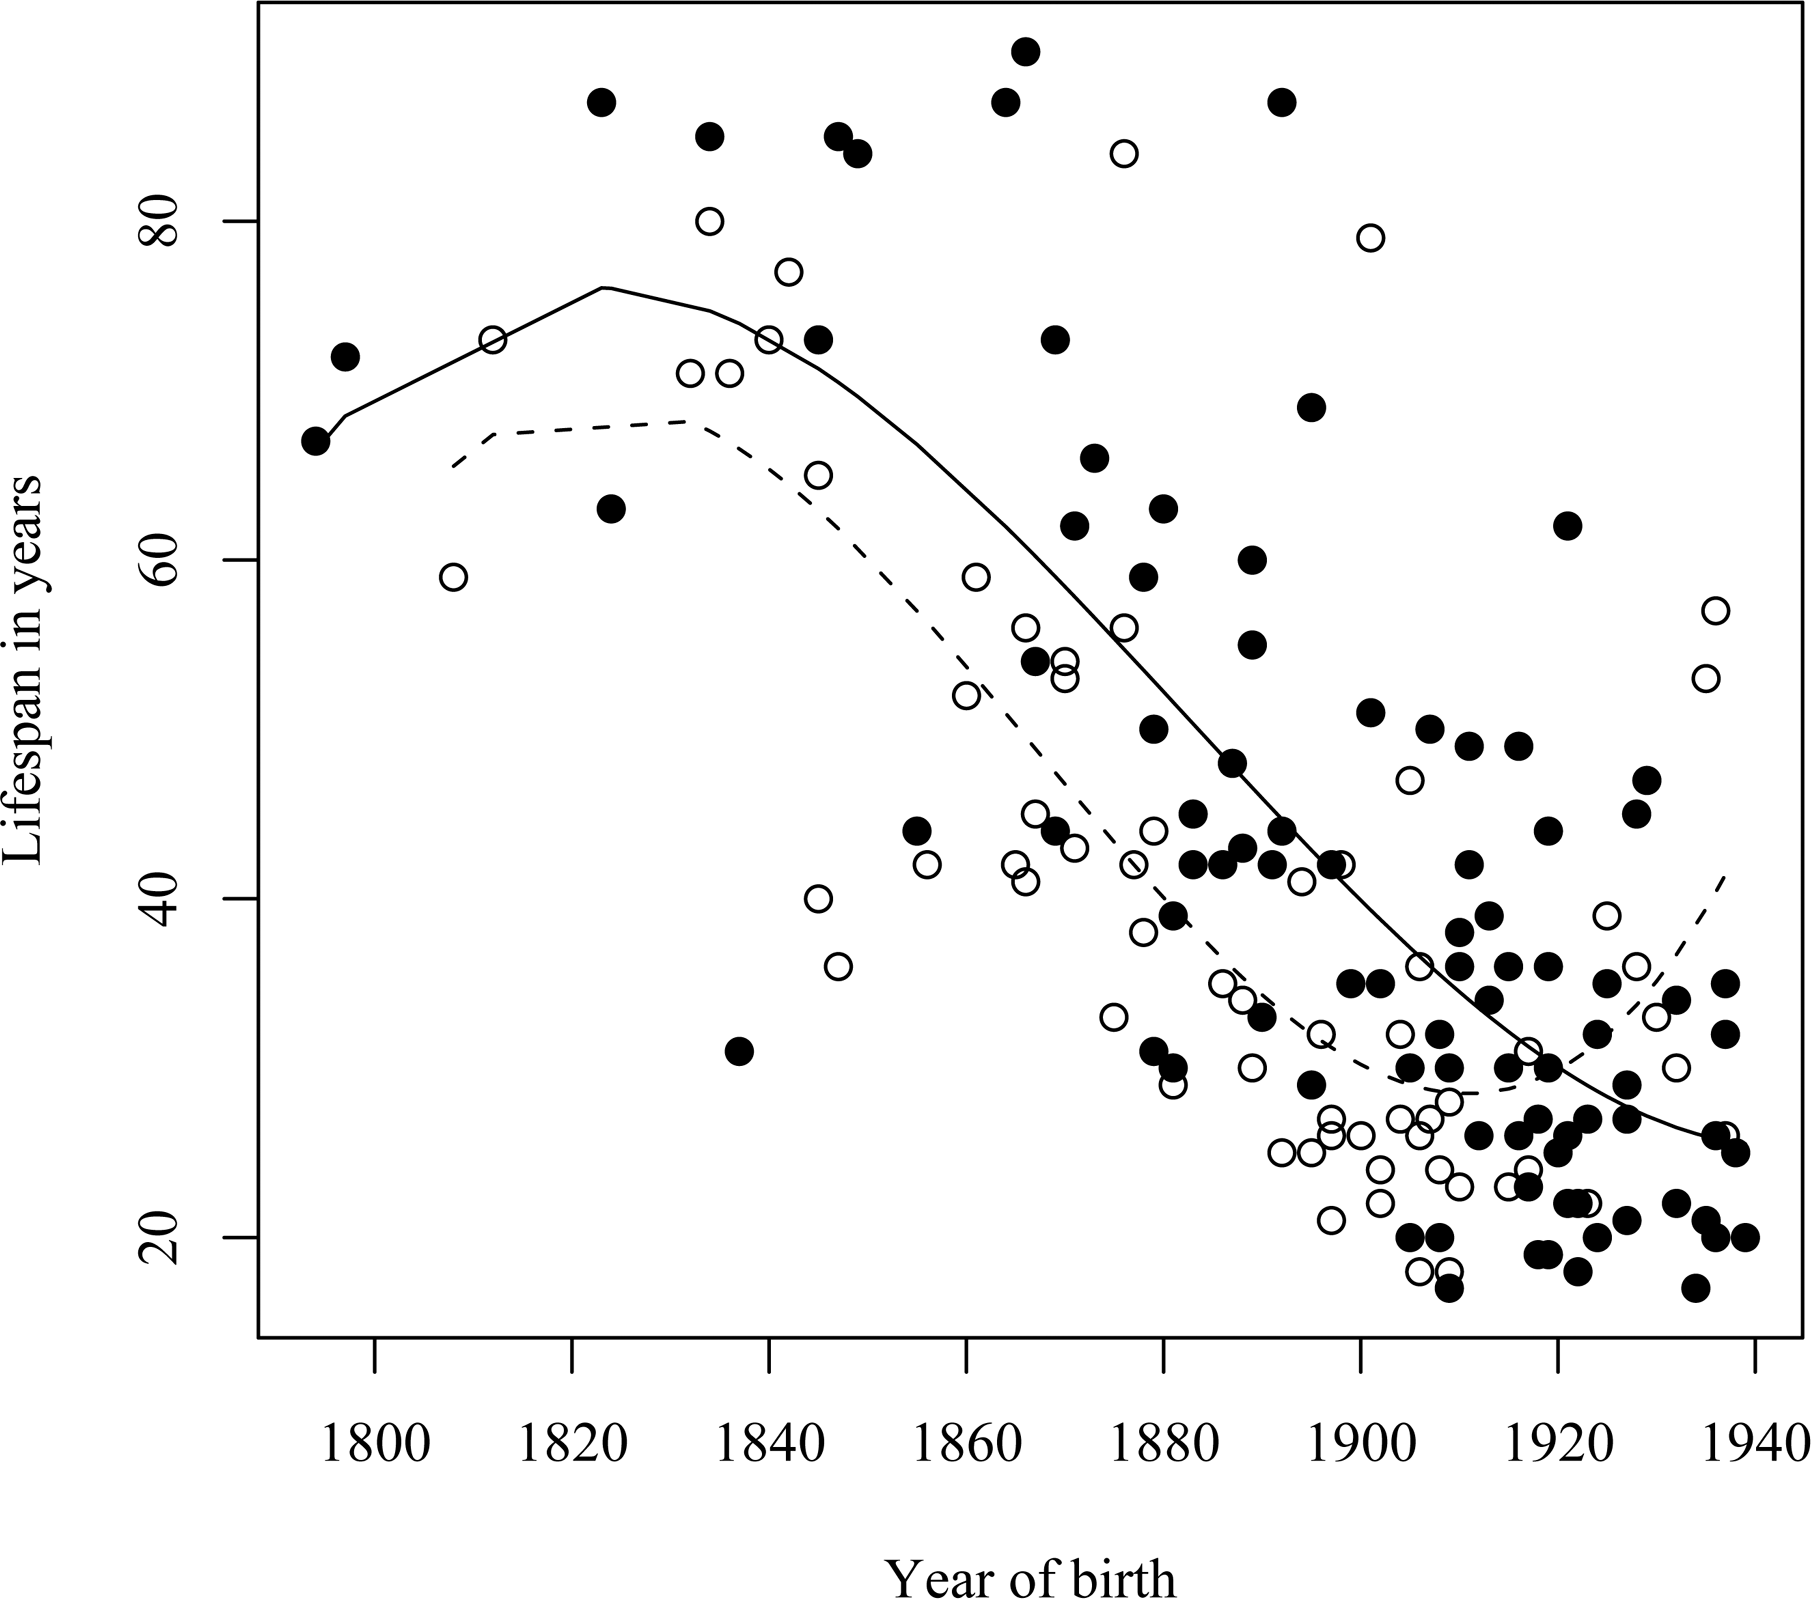 A comparison of the onset, and trend, of life span reduction between two geographic regions.